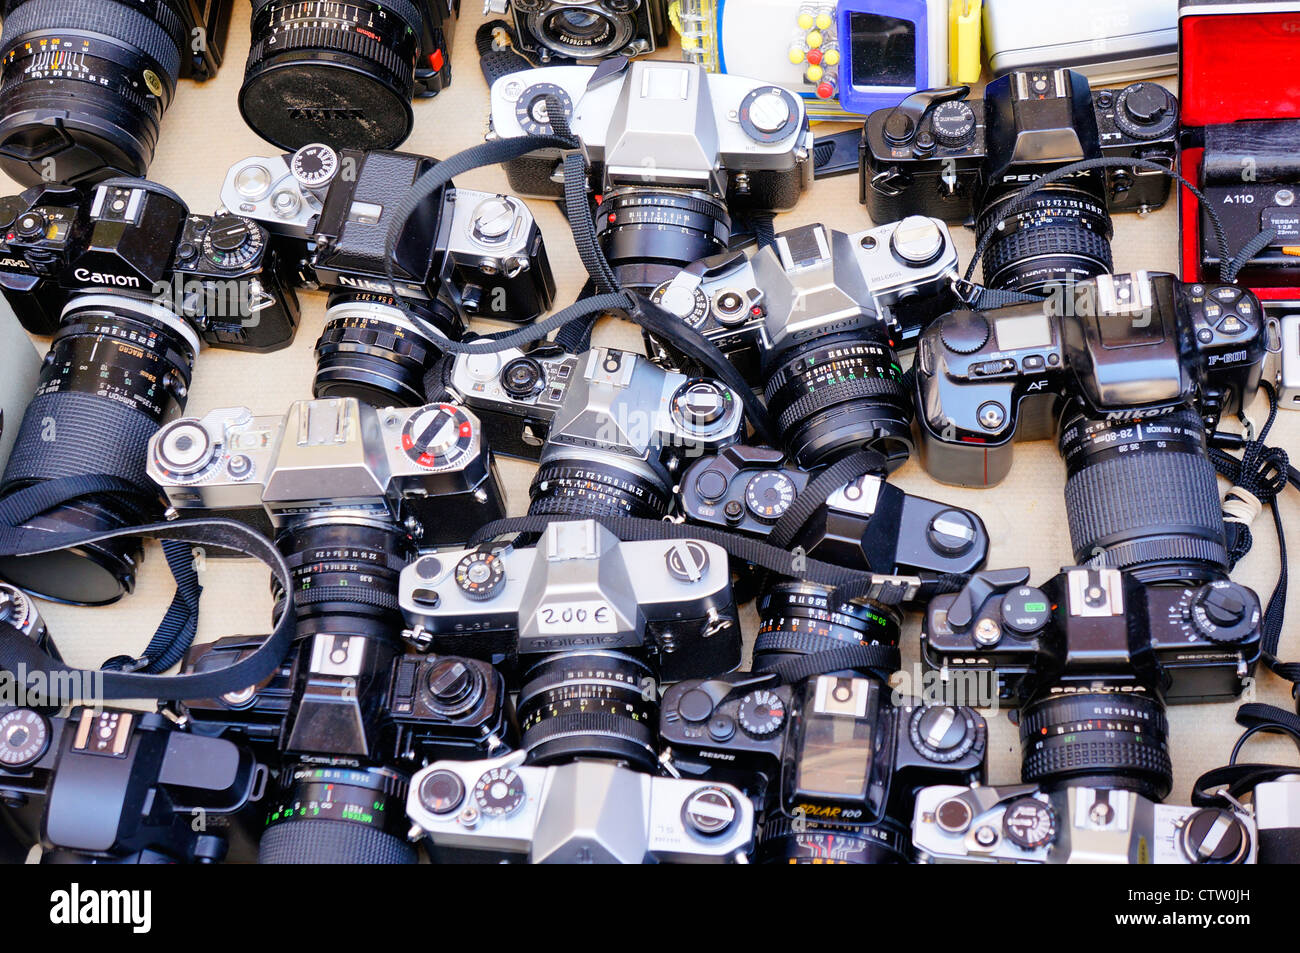 collectible old cameras for sale in El Rastro is the most popular open air flea market in Madrid, Spain - Stock Image